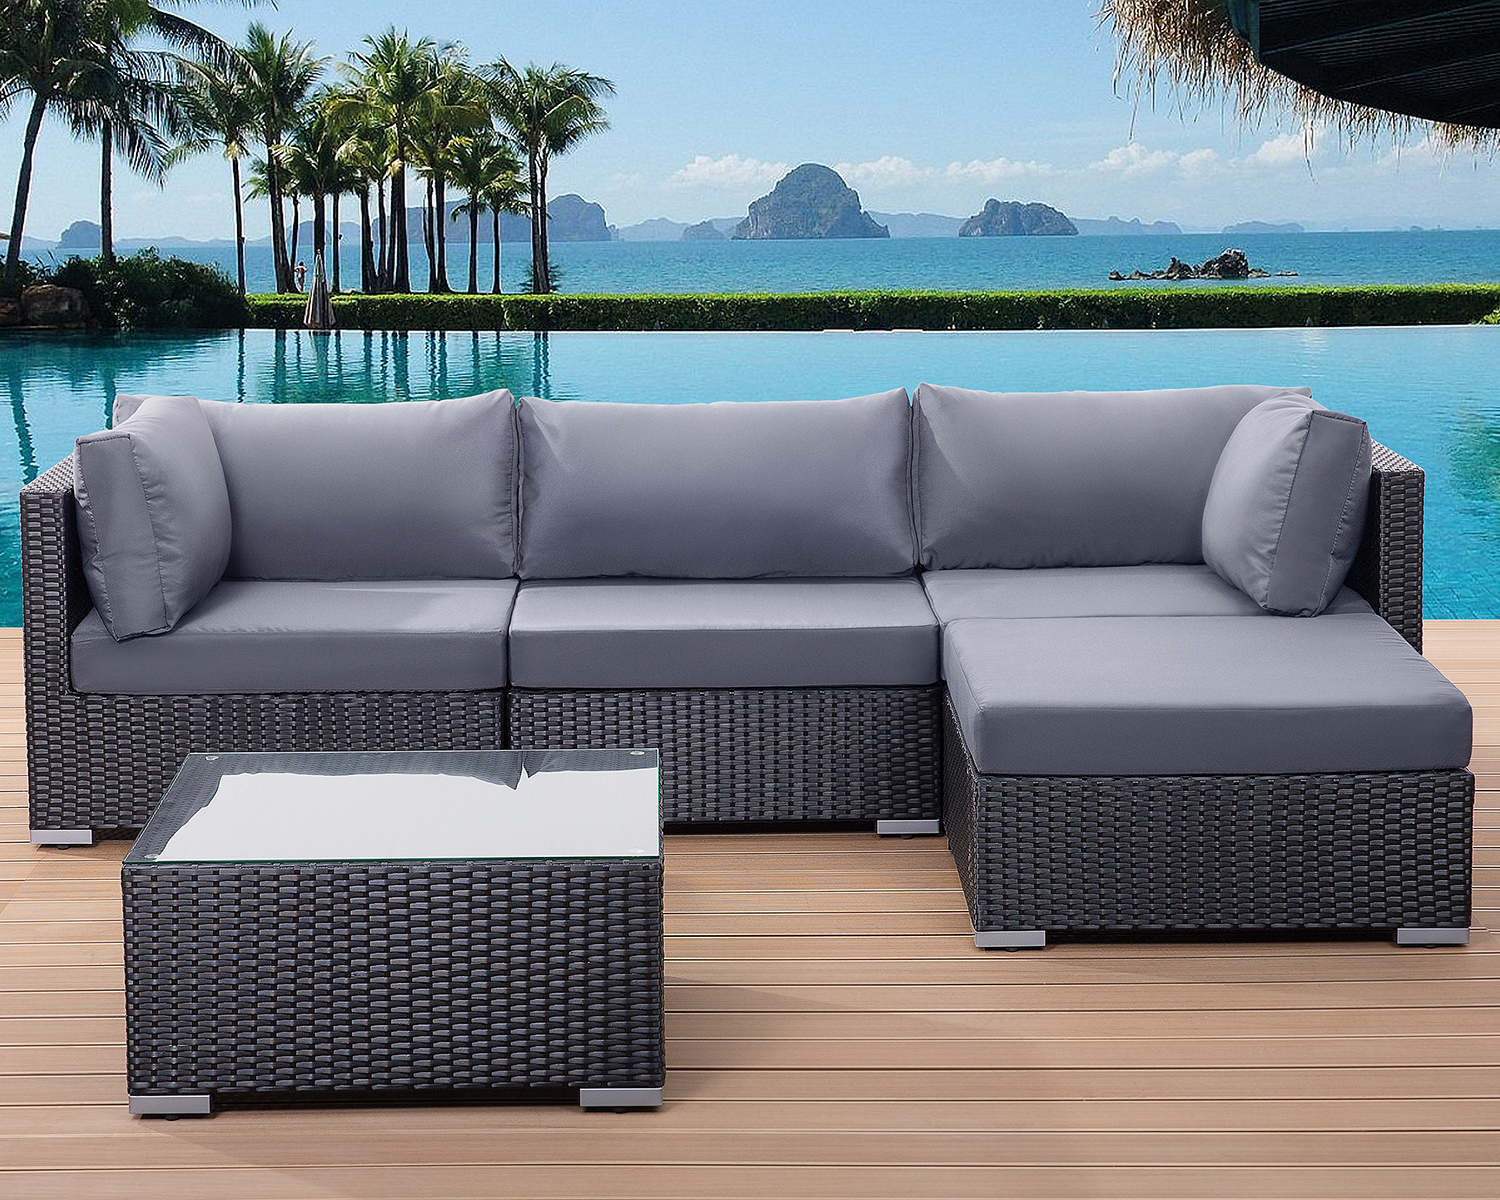 Patio, settee, garden, poly rattan, lounge, sofa set ...